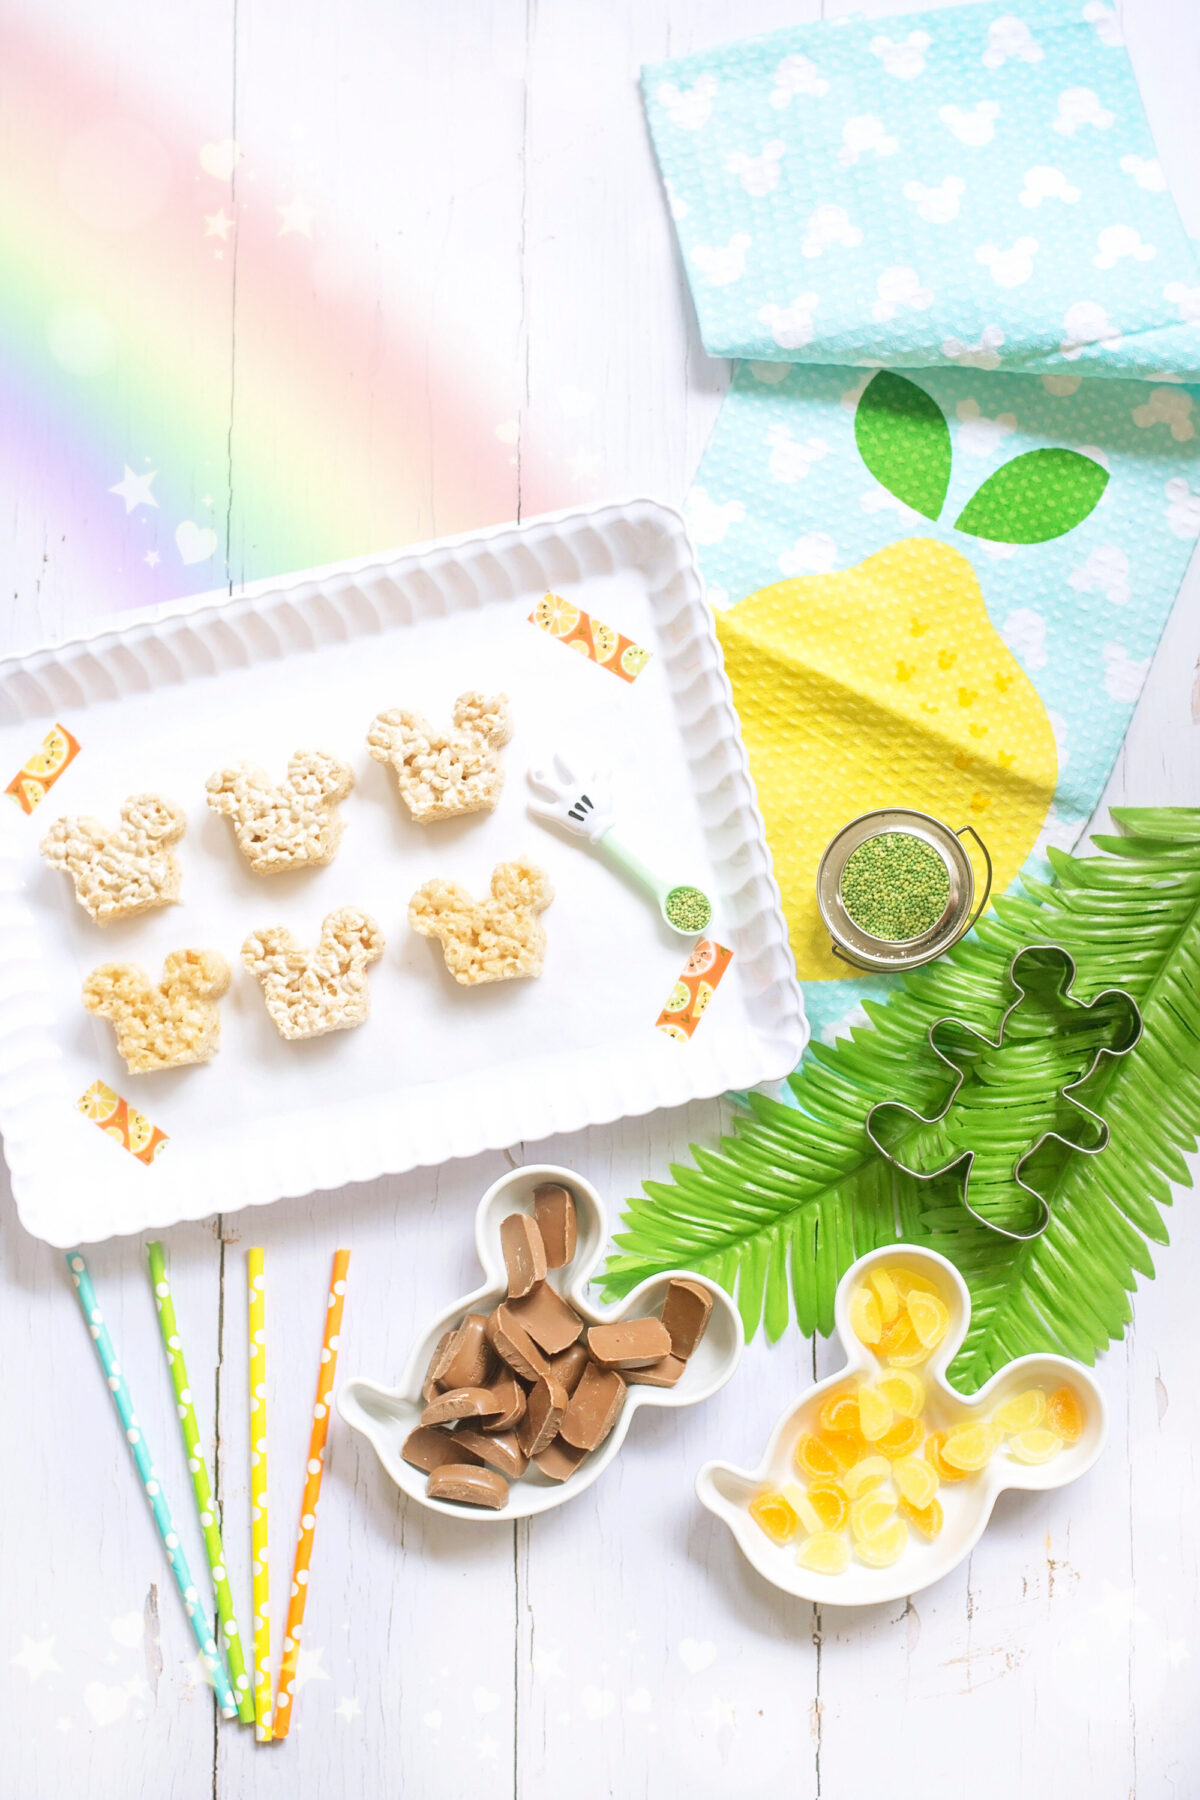 Image shows scalloped tray of summer themed Mickey Mouse Rice Krispie Treats surrounded by orange and lemon slices and tropical leaves, Disney tea towels and Minnie Mouse straws. All of the ingredients for the recipe are laid out on the tray including a DIsney's Mickey Mouse cookie cutter.